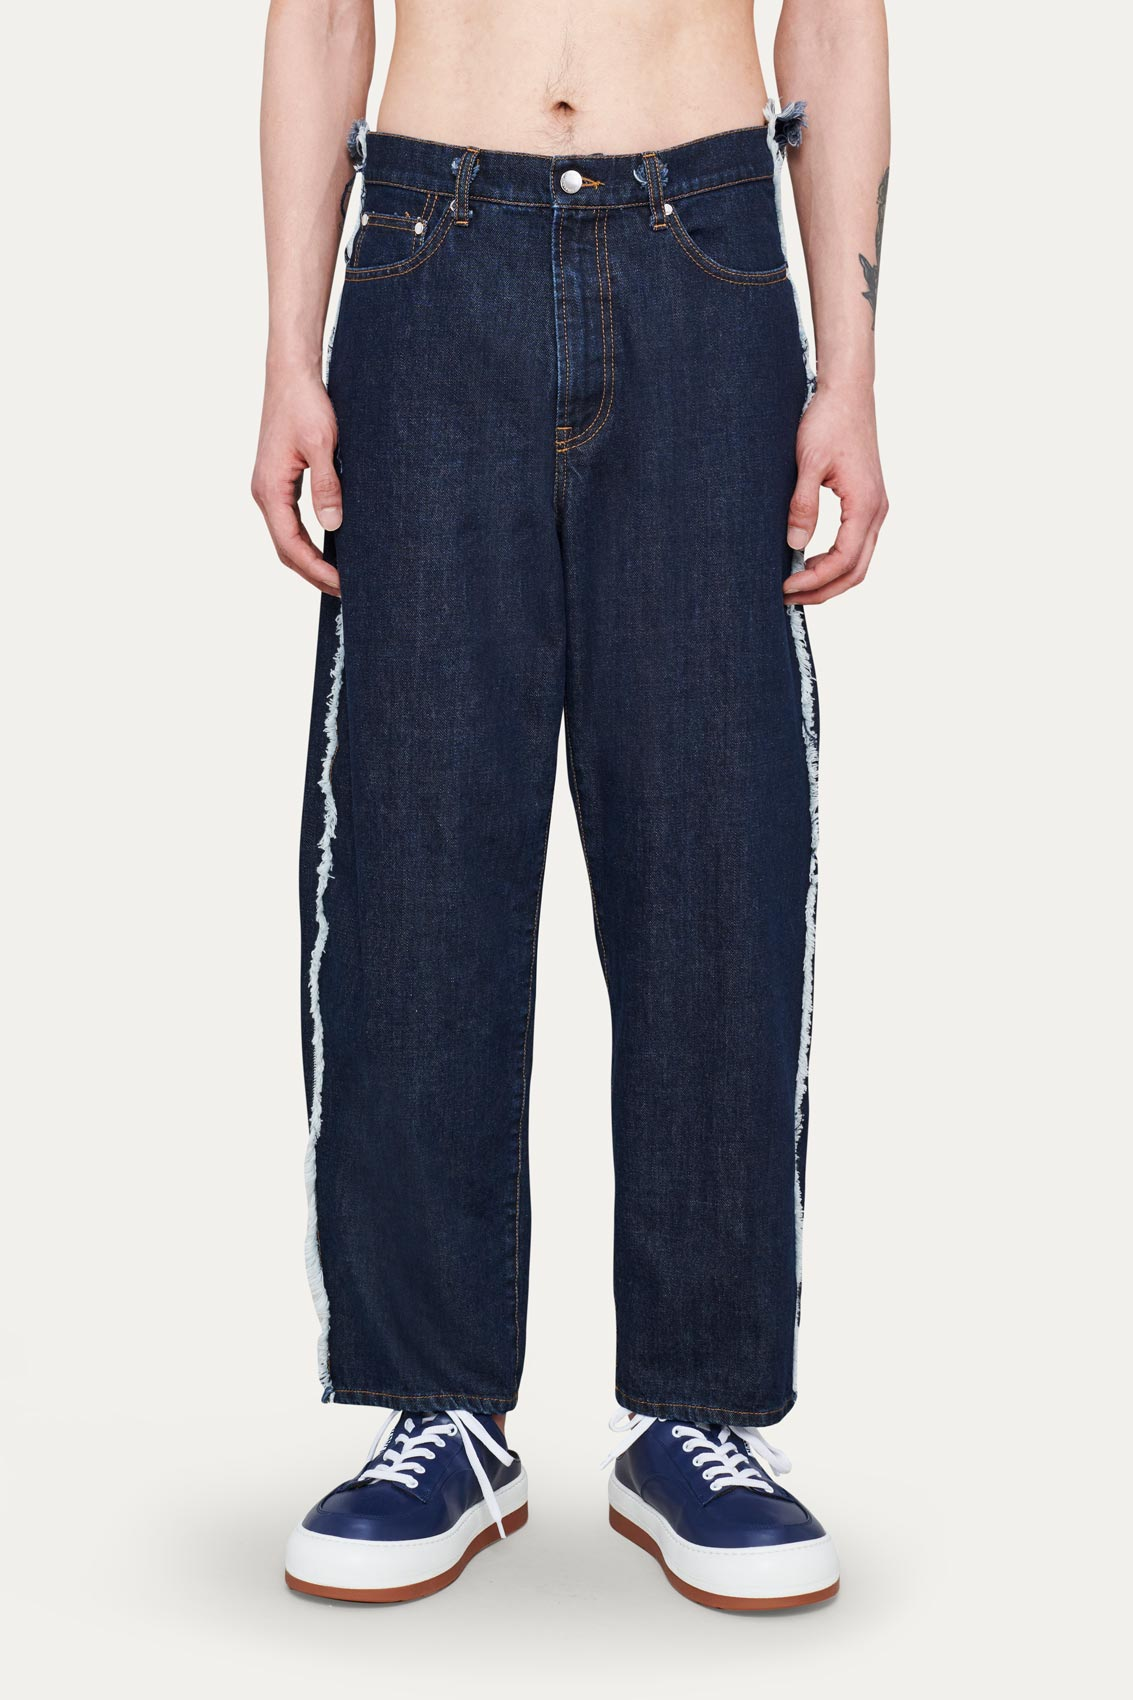 WASHED DENIM CLASSIC PANTS WITH FRINGED BANDS